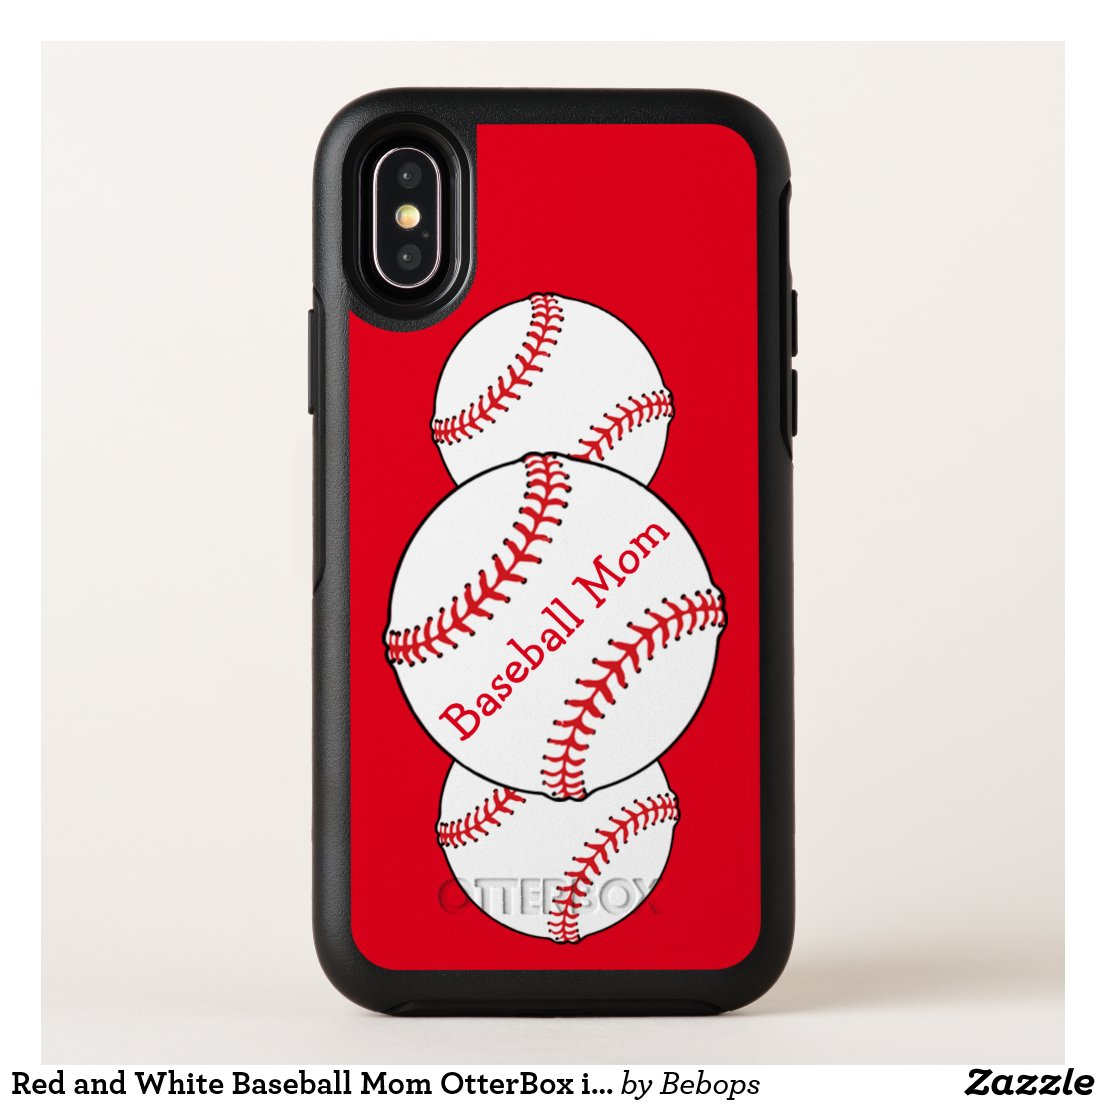 Red and White Baseball Mom OtterBox iPhone X Case